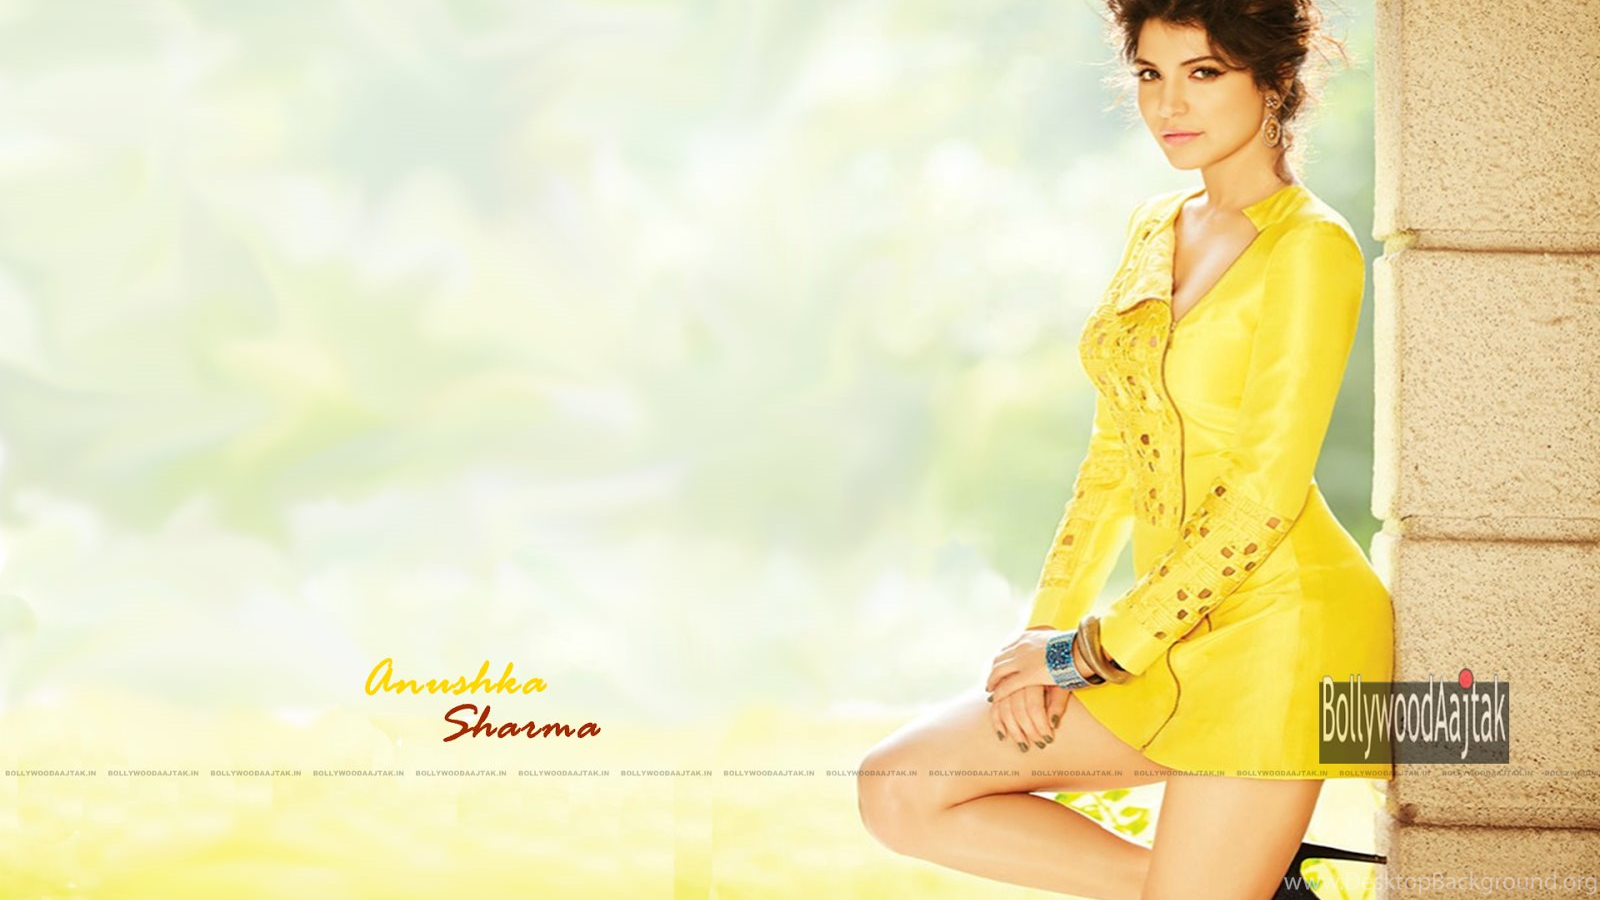 anushka sharma bikini: anushka sharma hot wallpapers desktop background